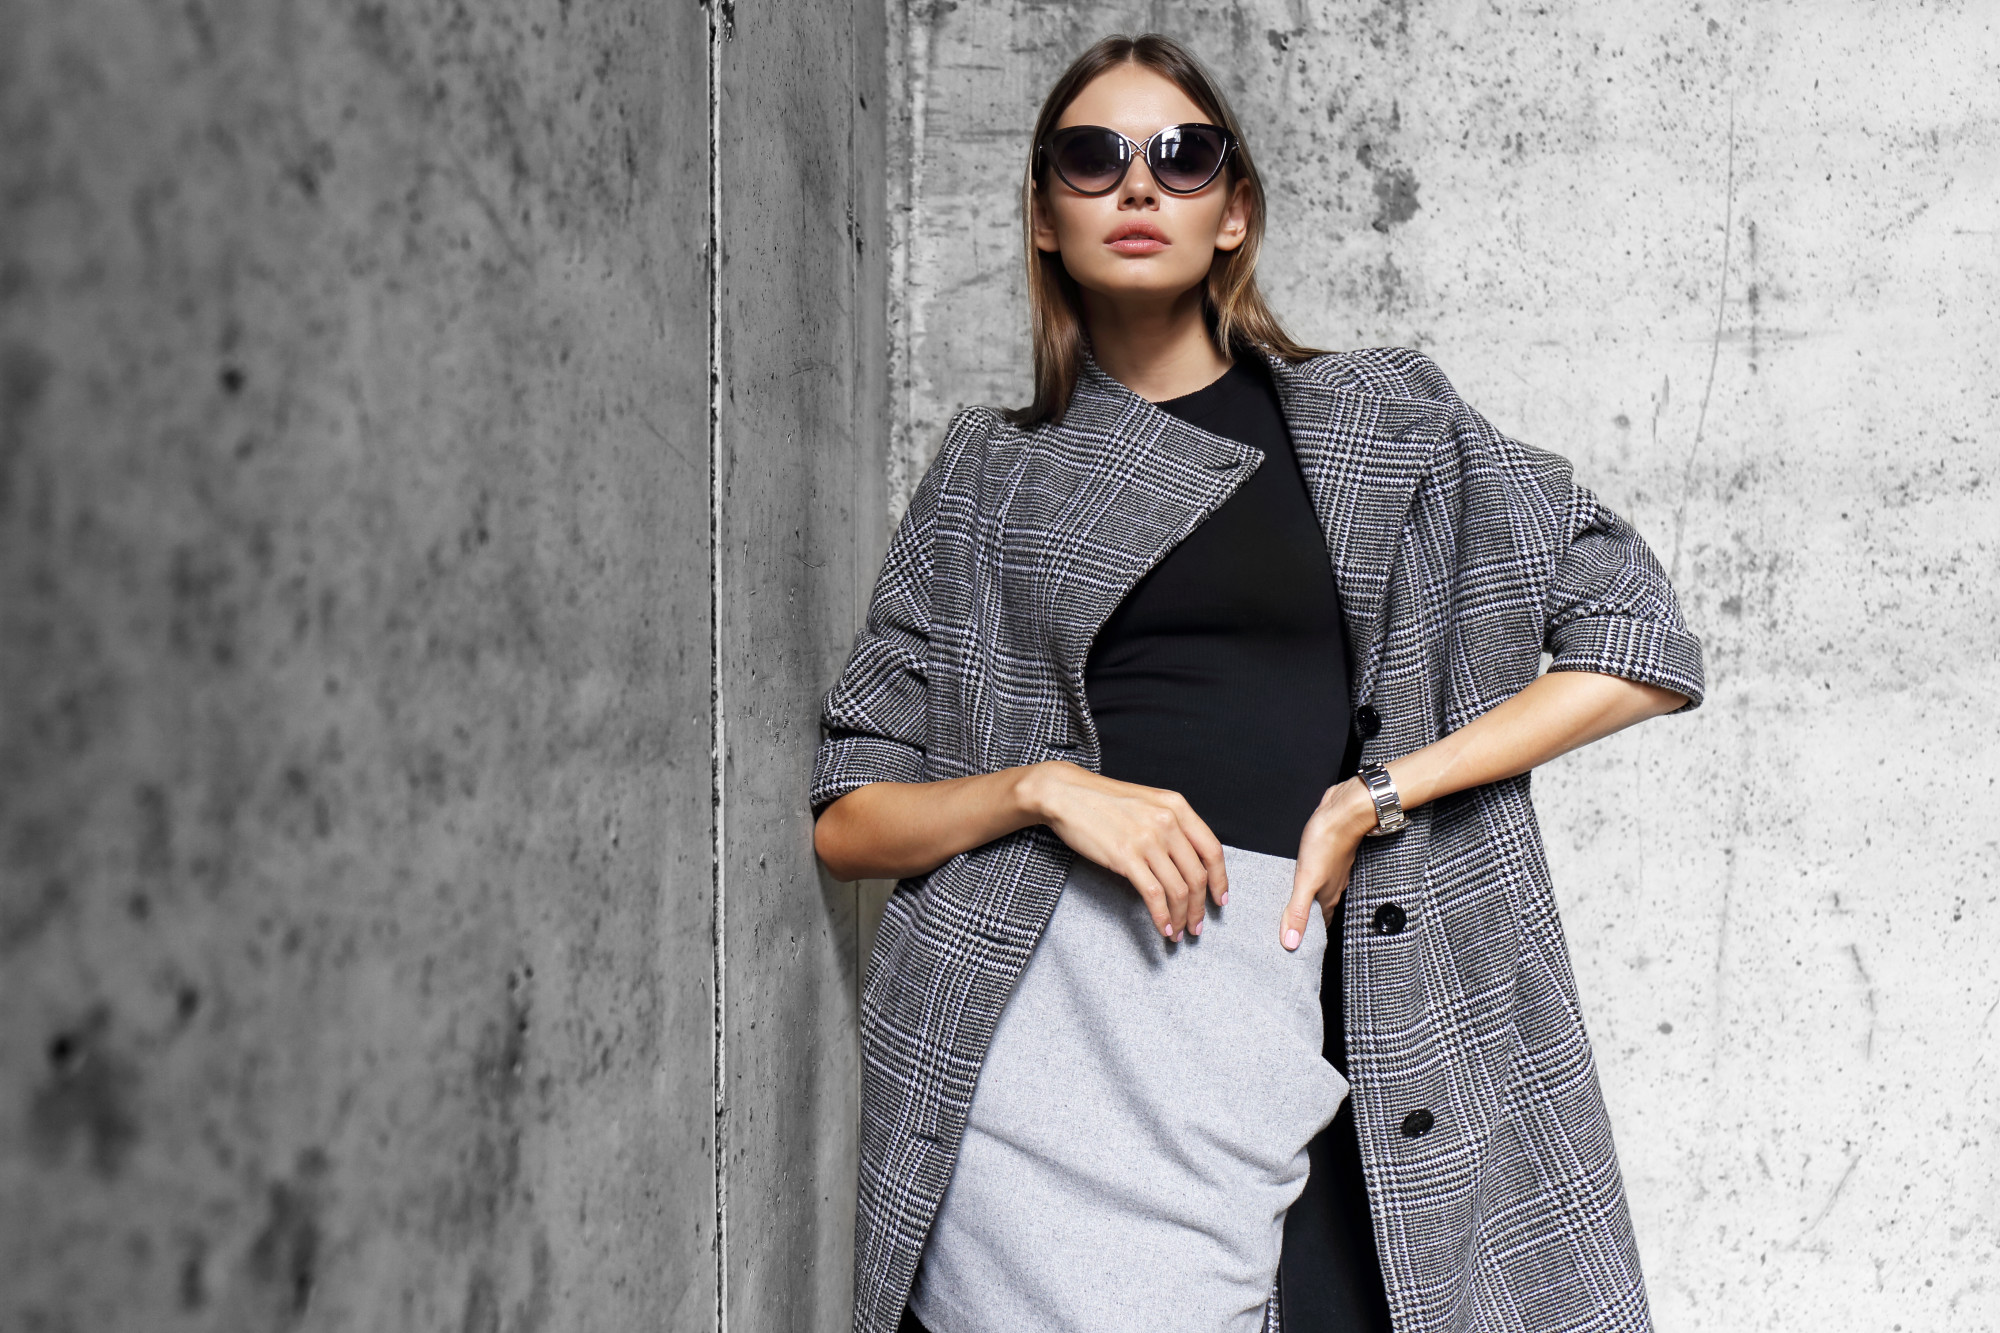 How to Dress Elegantly: A Guide for Women